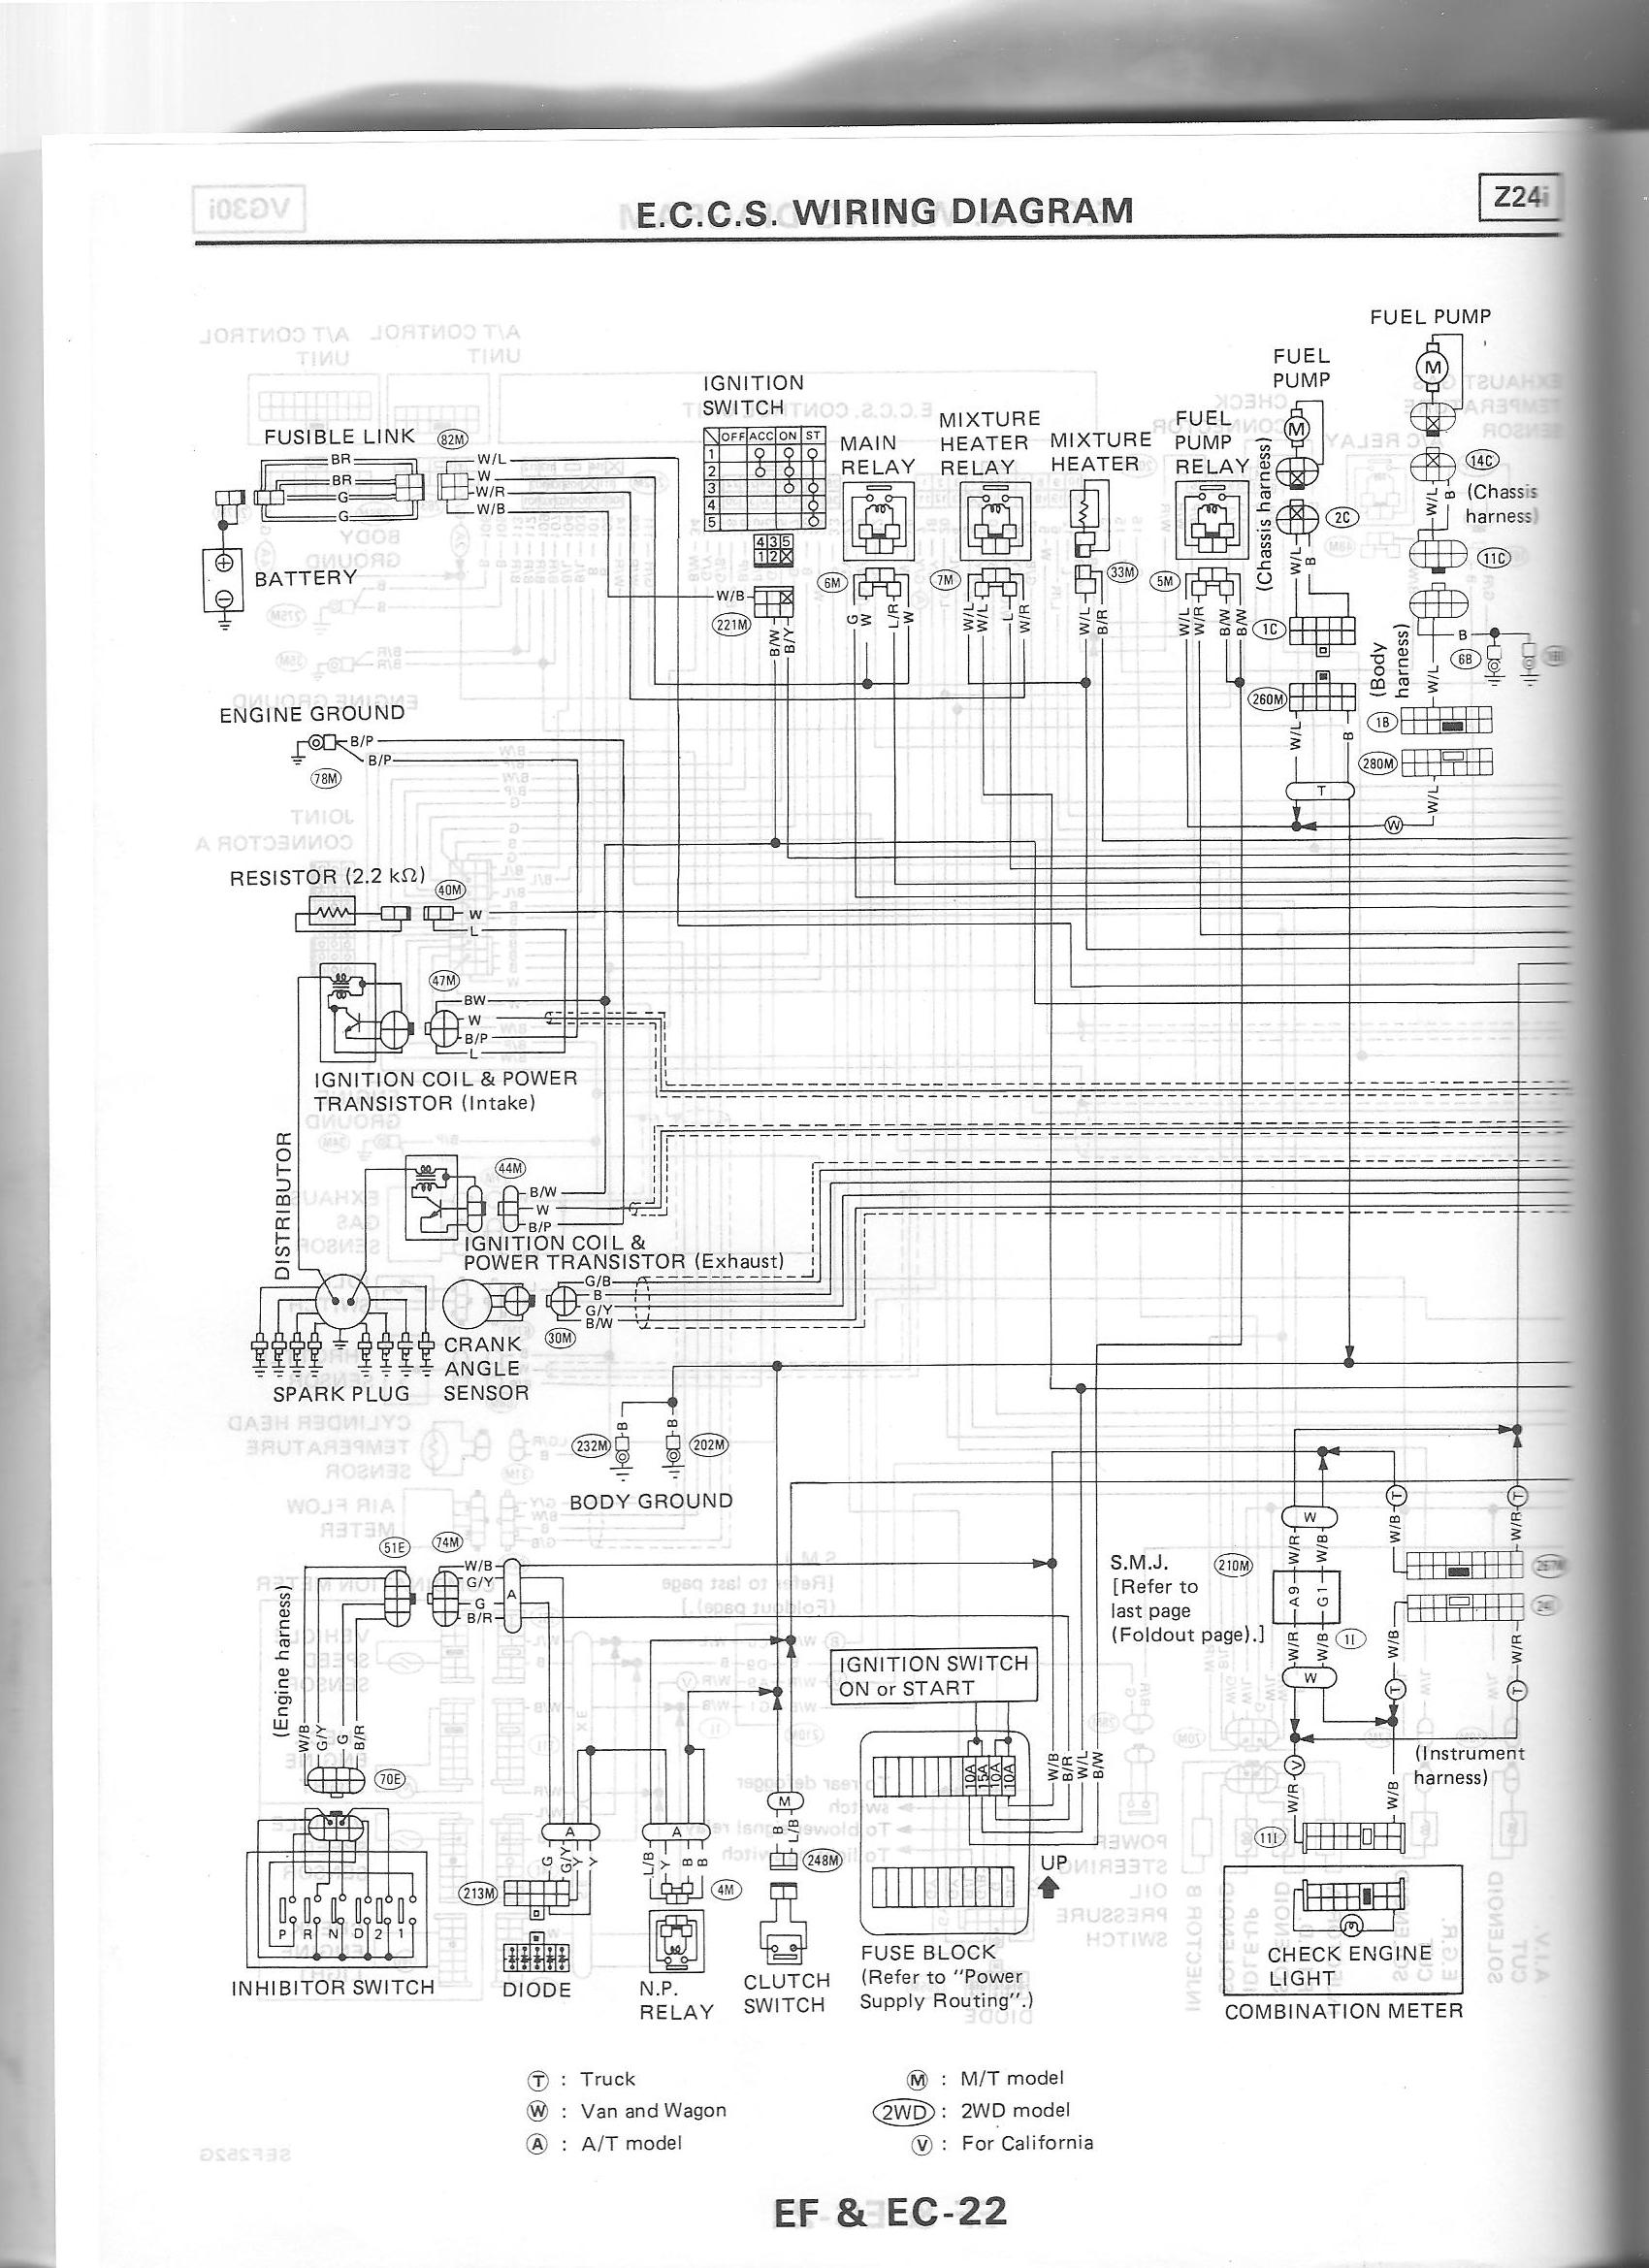 Datsun 240z Headlight Wiring Diagram 36 Images 9003 Harness Free Download 1988 Z24i Schematic